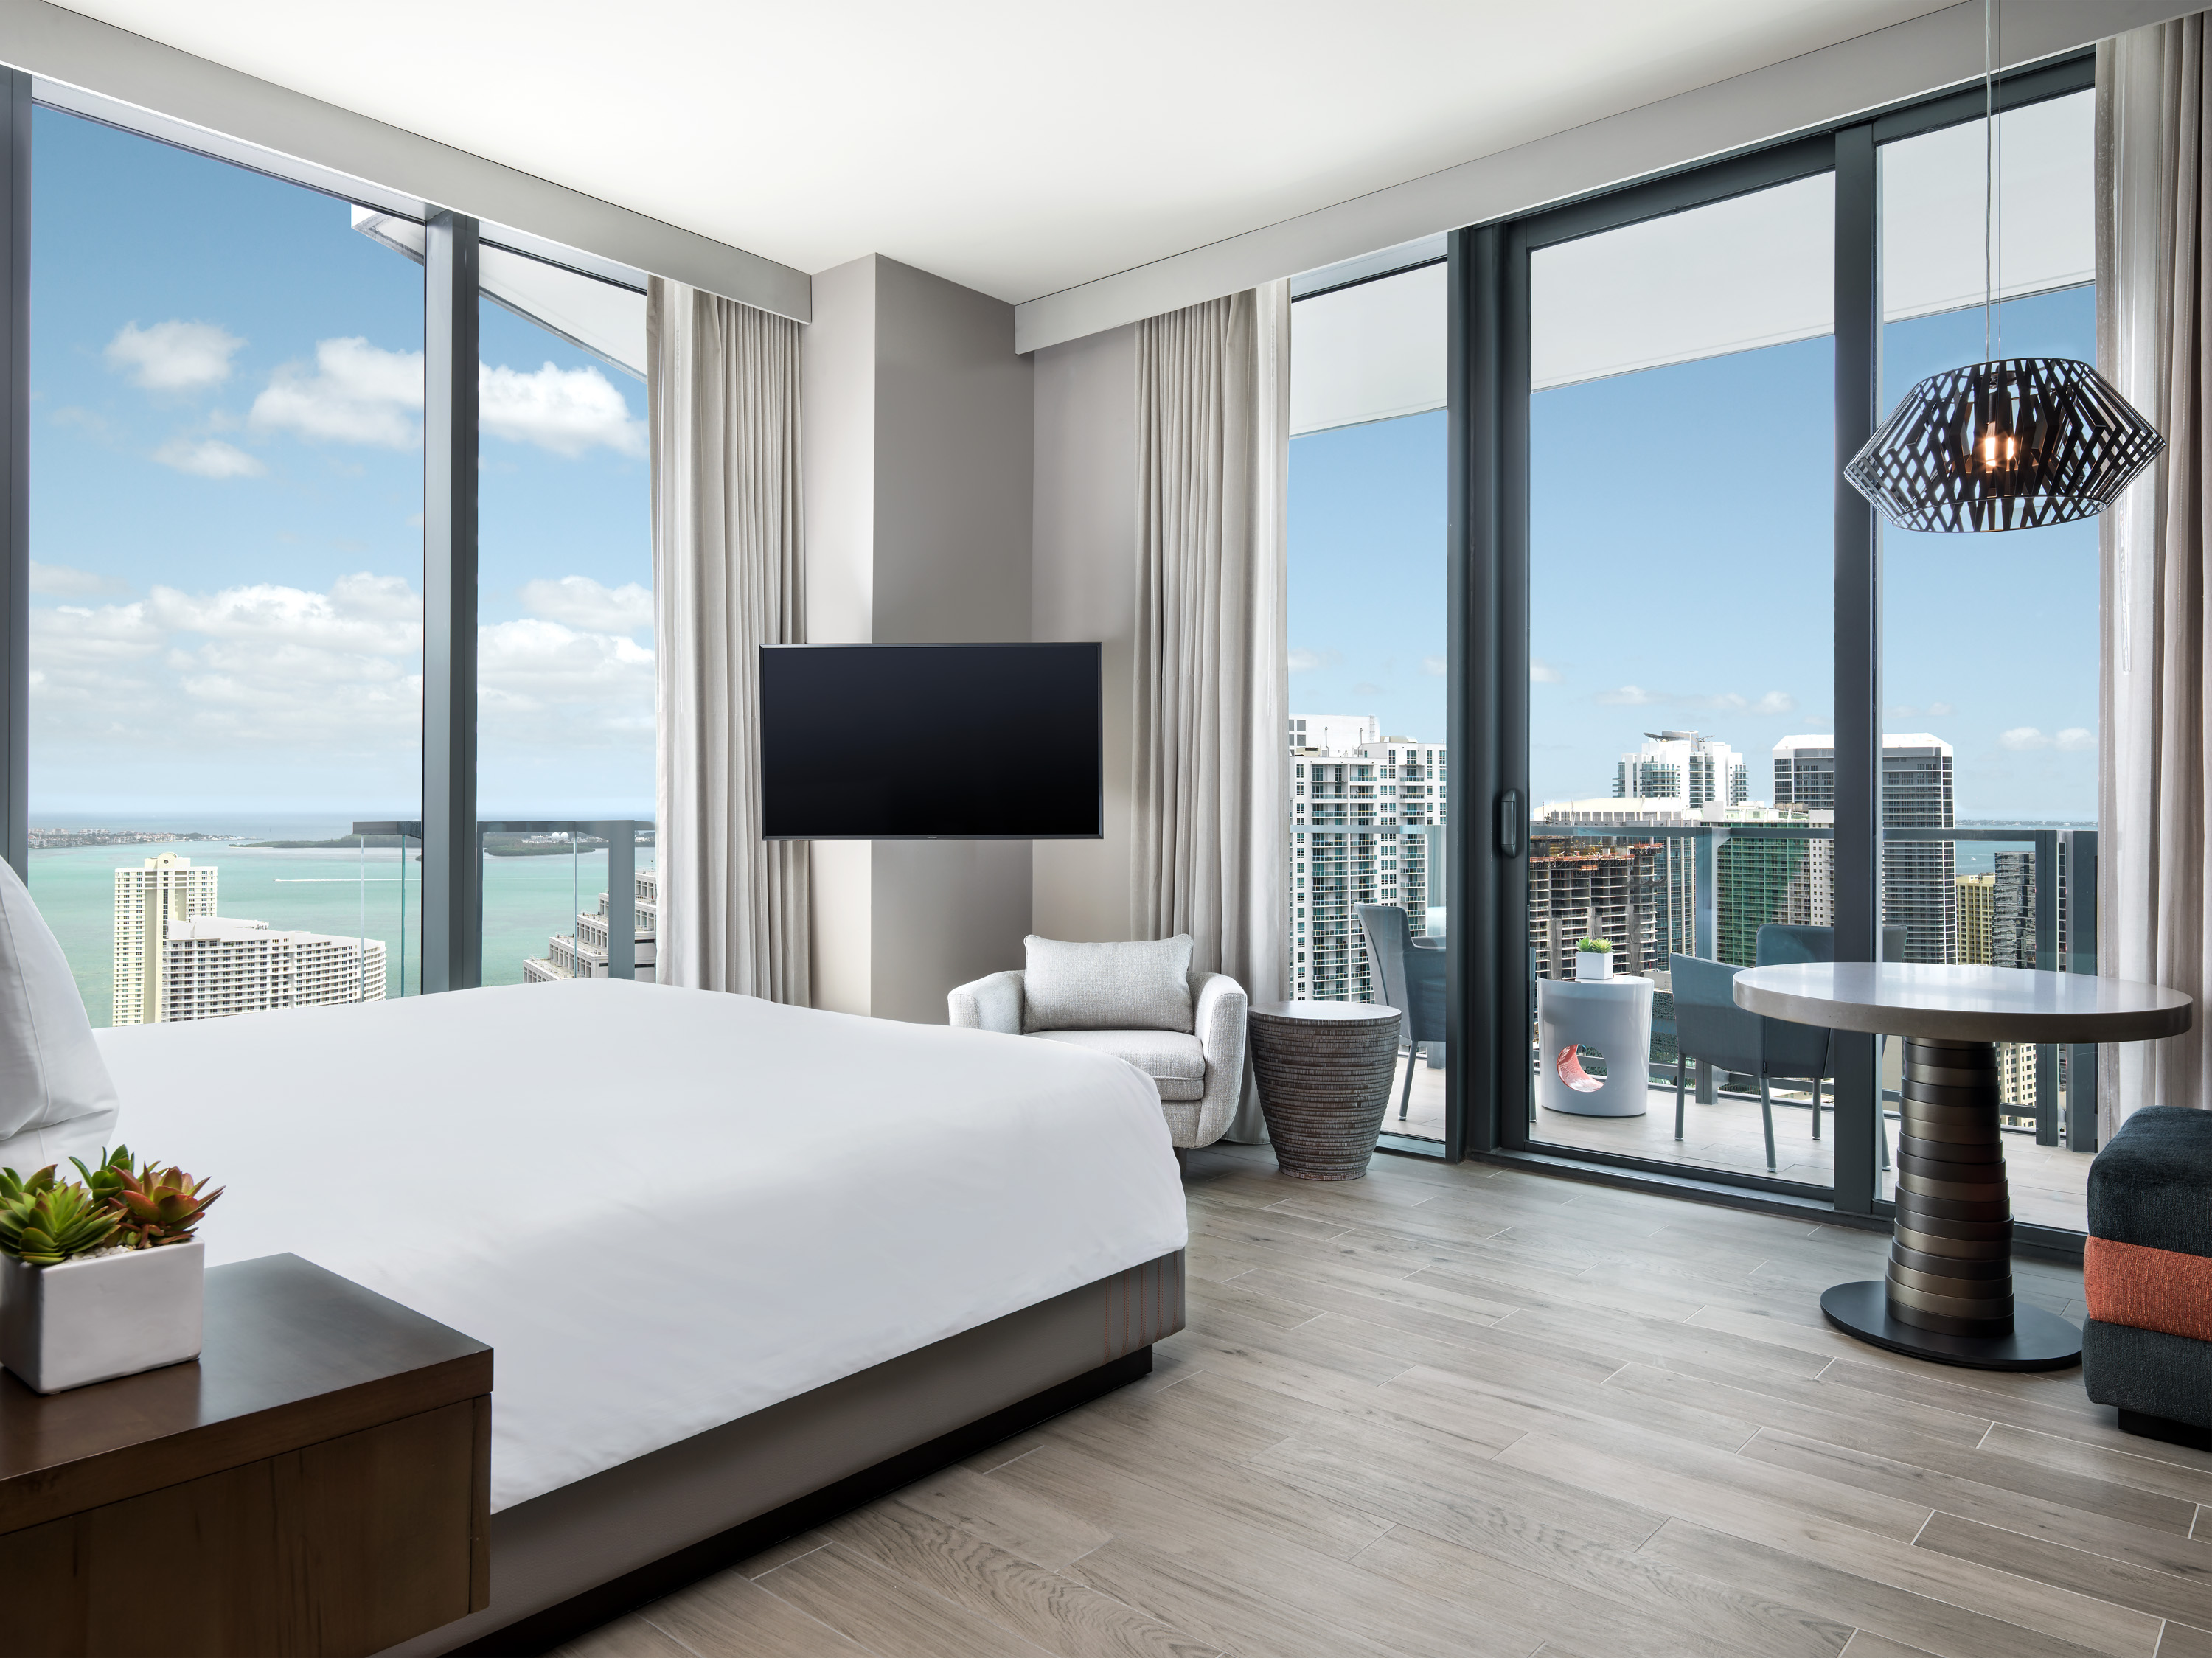 Feng shui stylings anchor east miami 39 s stunning design for Design hotel east